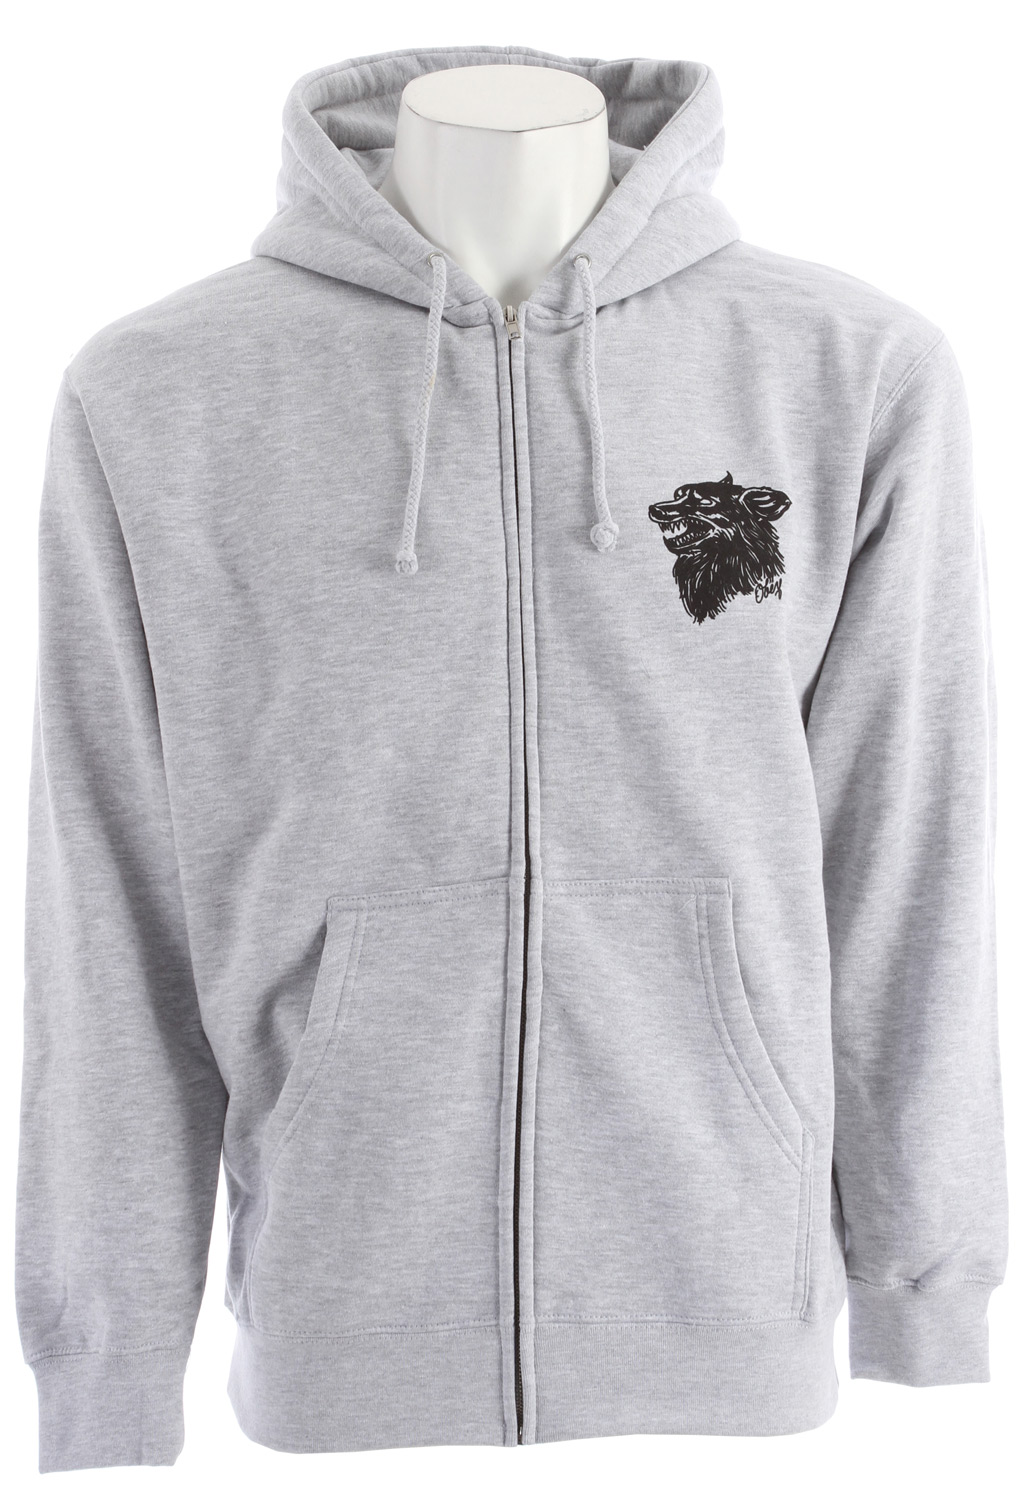 Key Features of the Obey Hell Hound Hoodie: Regular fit zip hood fleece with pouch pocket and rib trim Features graphic screenprint on chest and back 50% Cotton / 50% Polyester - $44.95